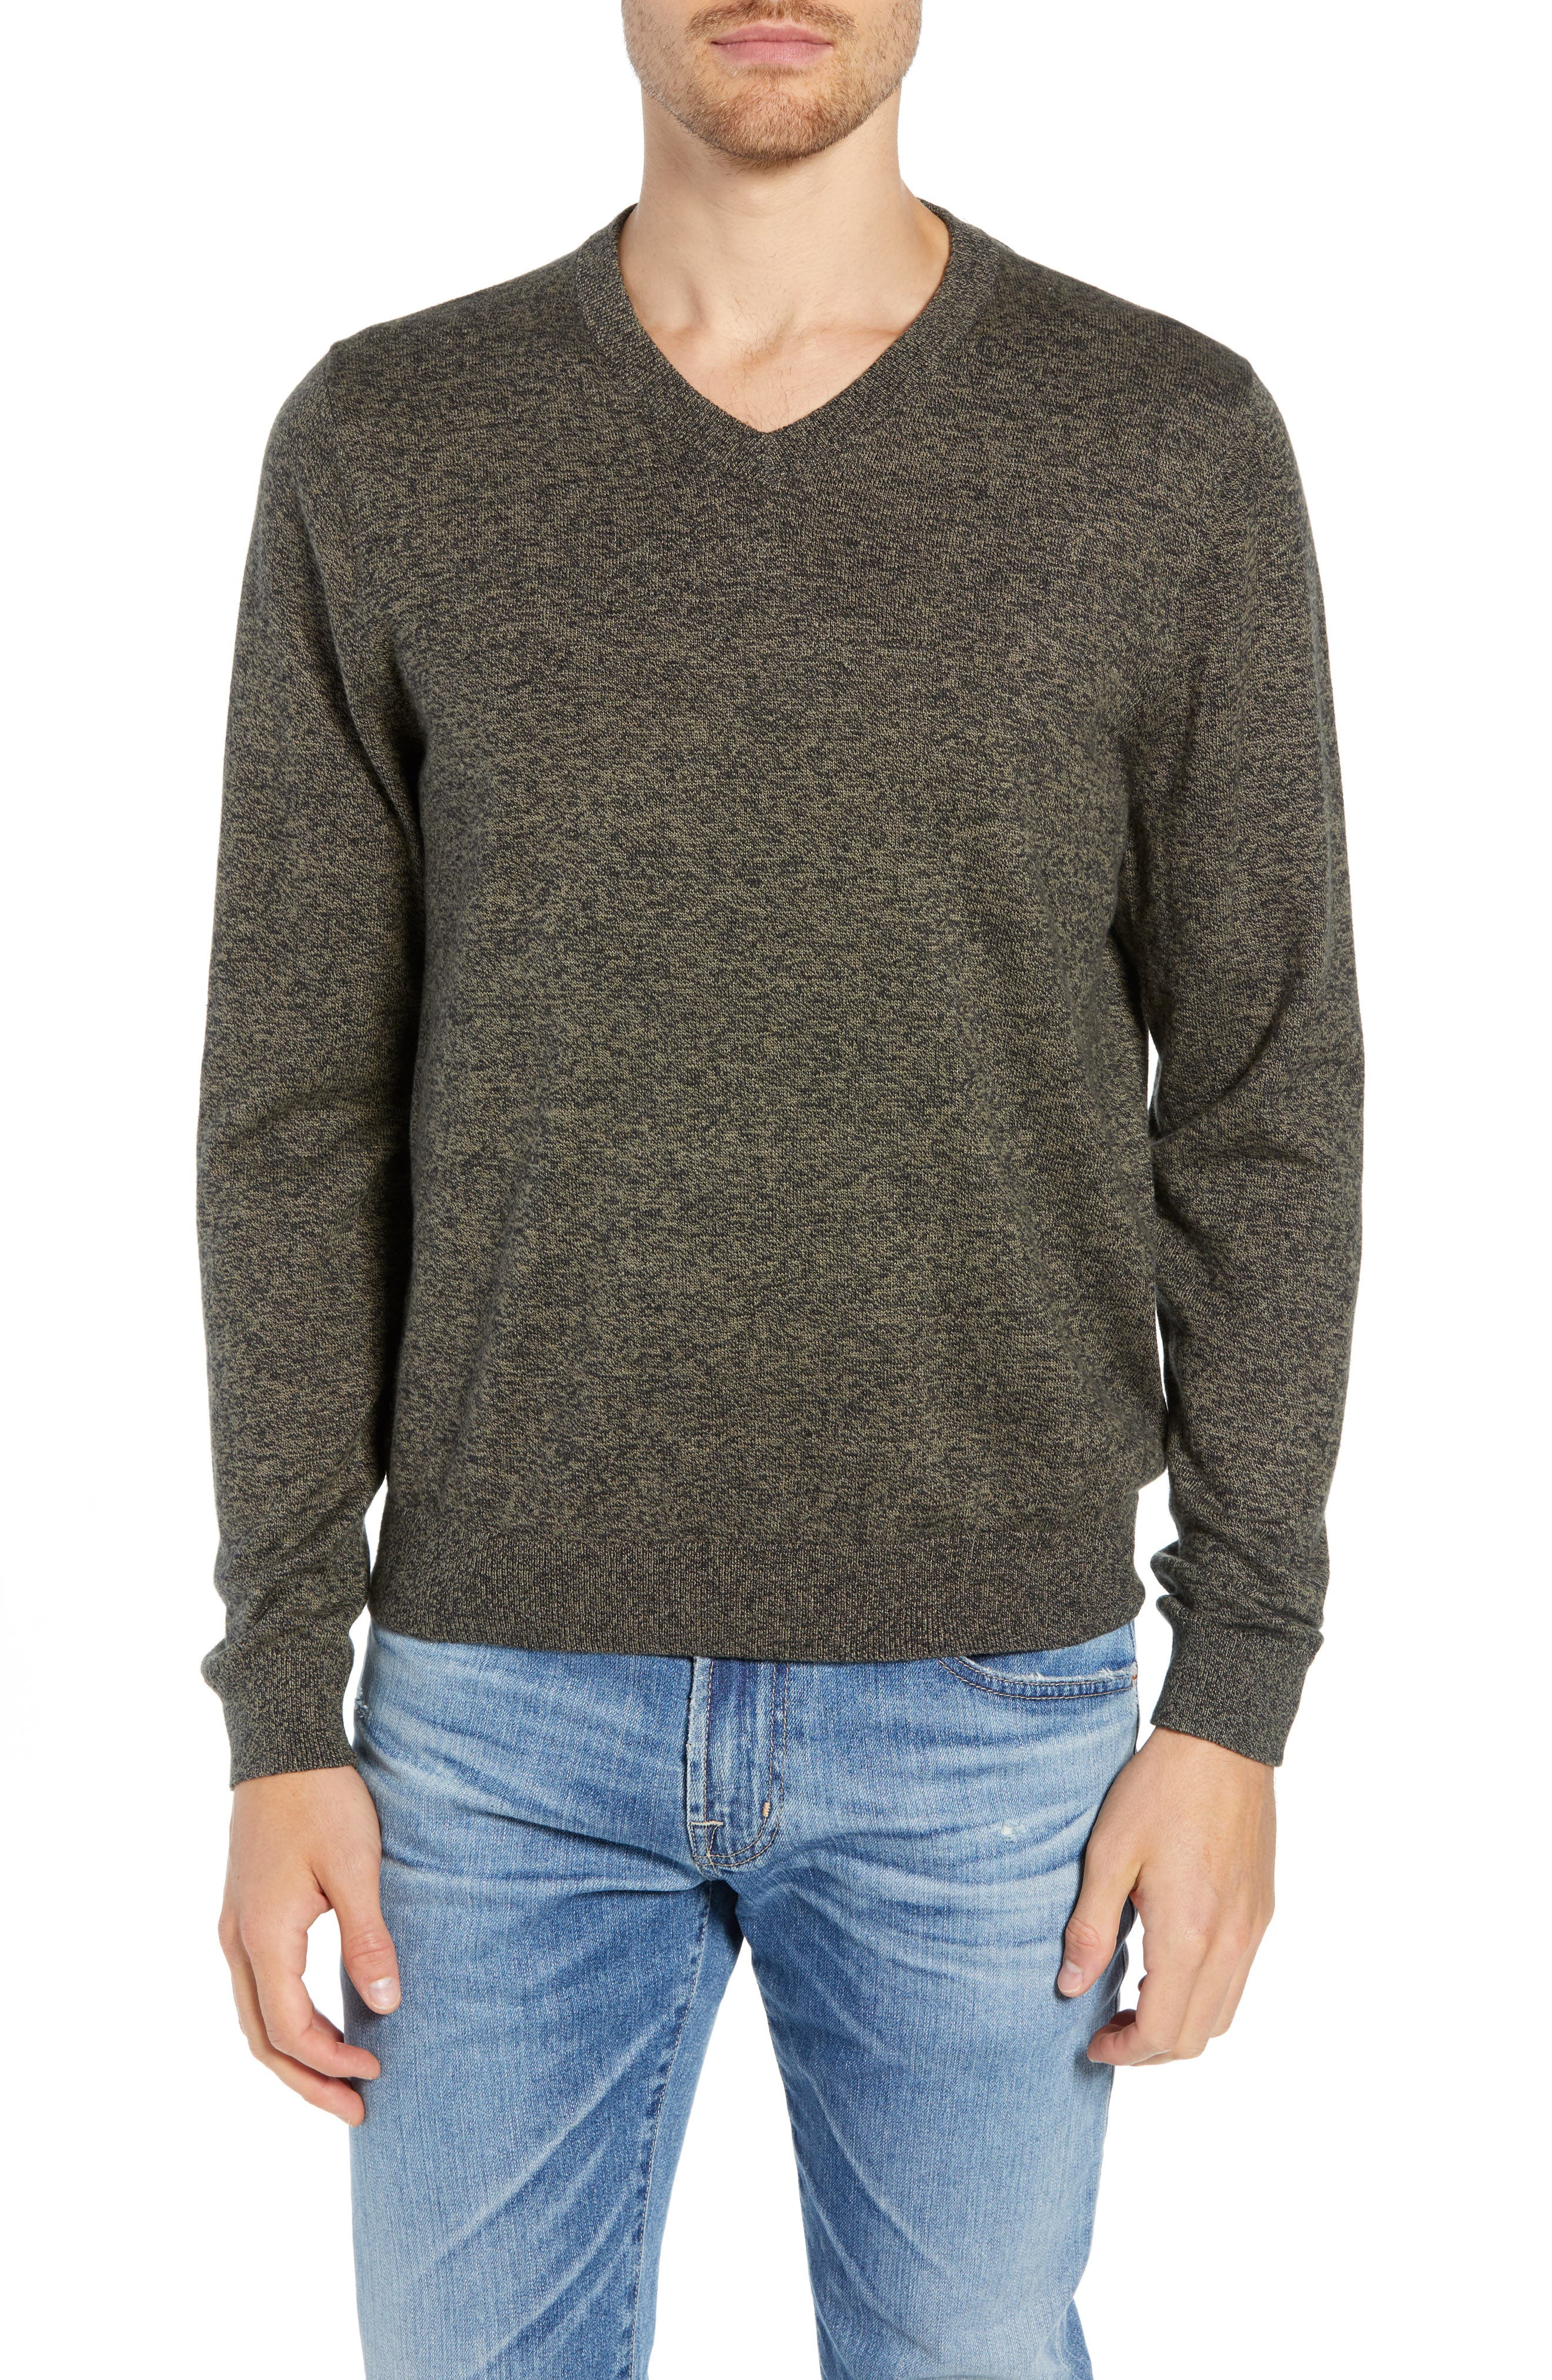 Cotton & Cashmere V-Neck Sweater,                             Main thumbnail 1, color,                             GREEN FOREST MARL